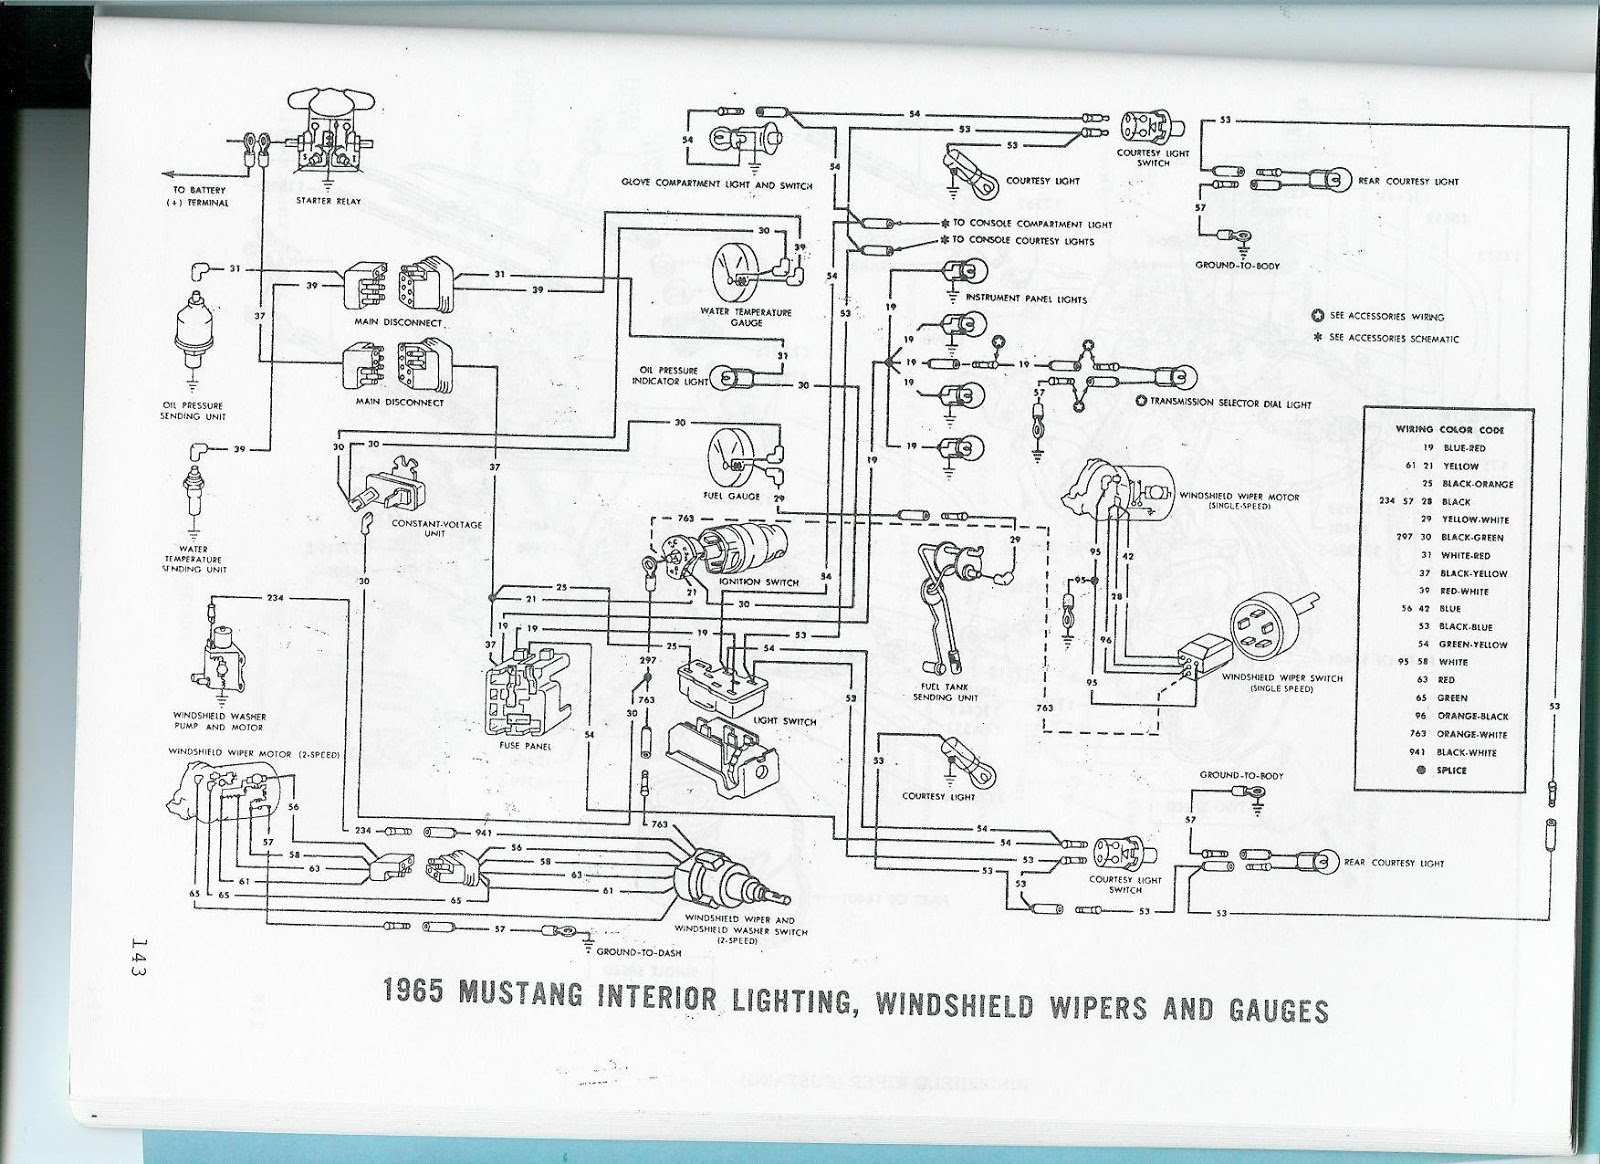 wiring diagram for 1972 chevy truck also 1966 mustang ignition70 mustang wiring diagram data wiring diagram update wiring diagram for 1972 chevy truck also 1966 mustang ignition wiring